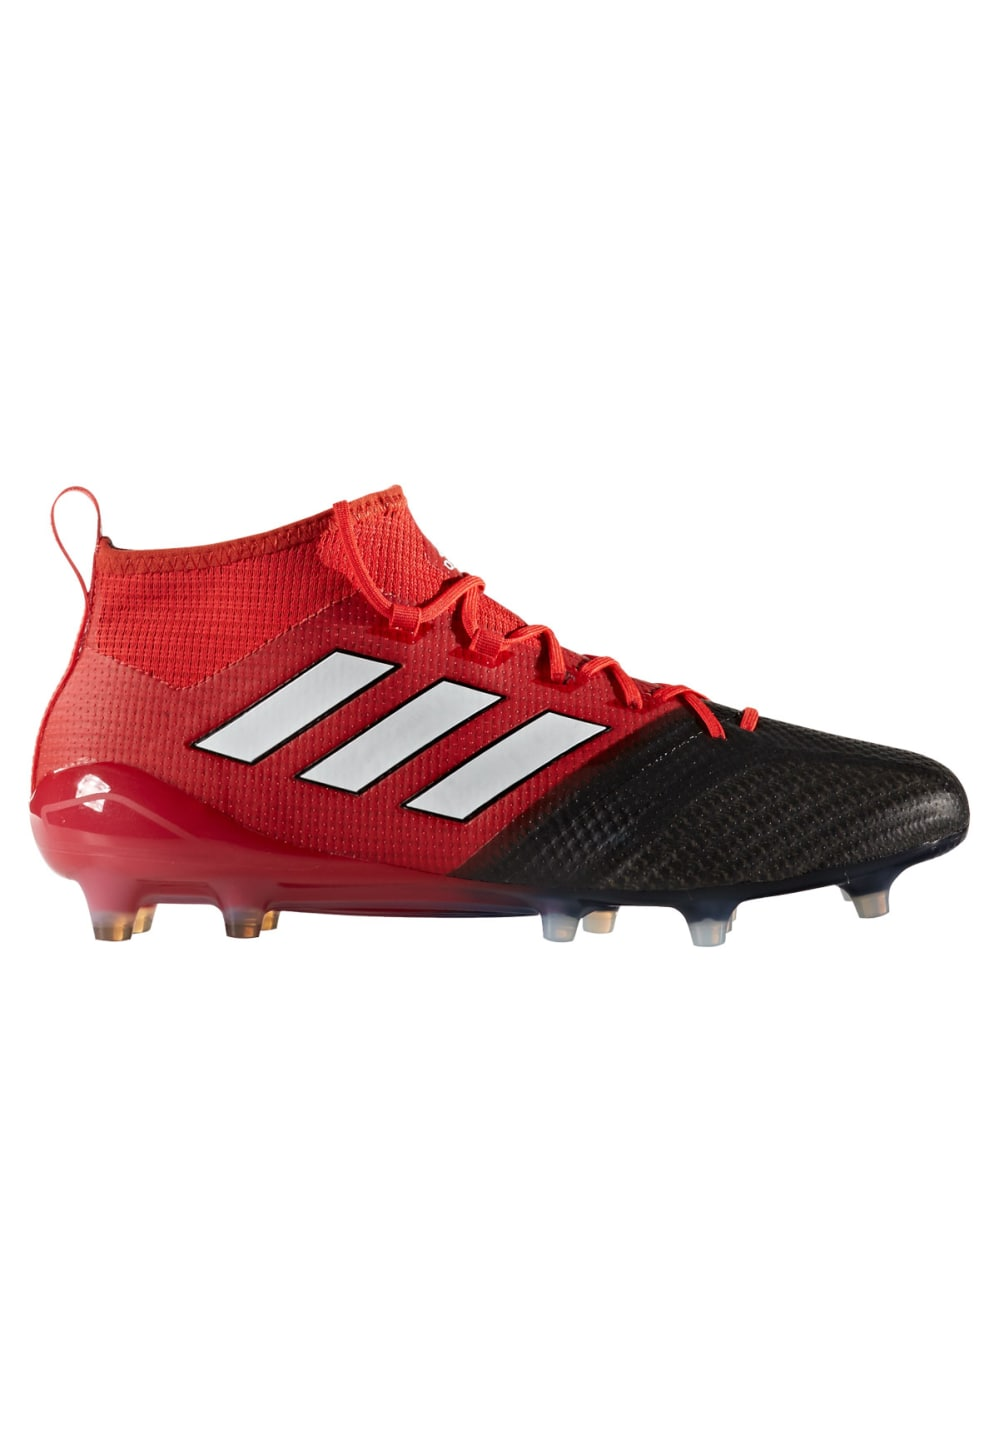 online store 4d572 1900a adidas ACE 17.1 PRIMEKNIT FG - Football Shoes for Men - Red